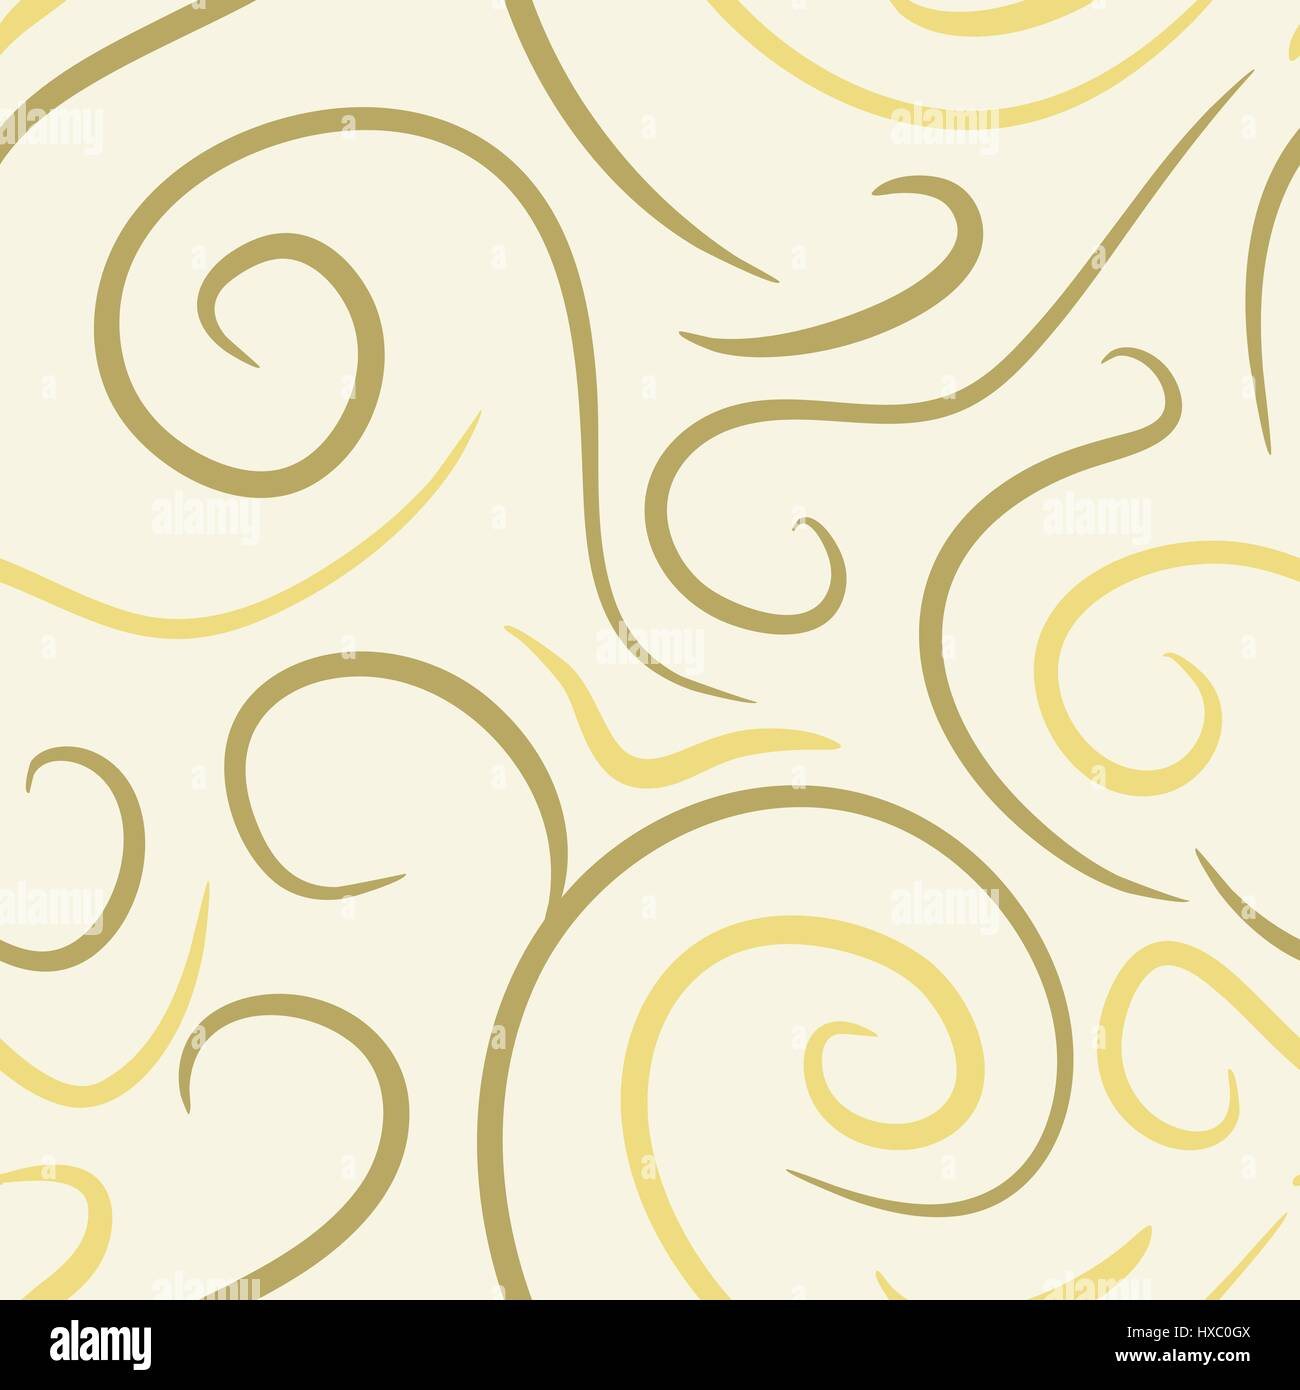 abstract vector colored swirls seamless pattern - yellow - Stock Image